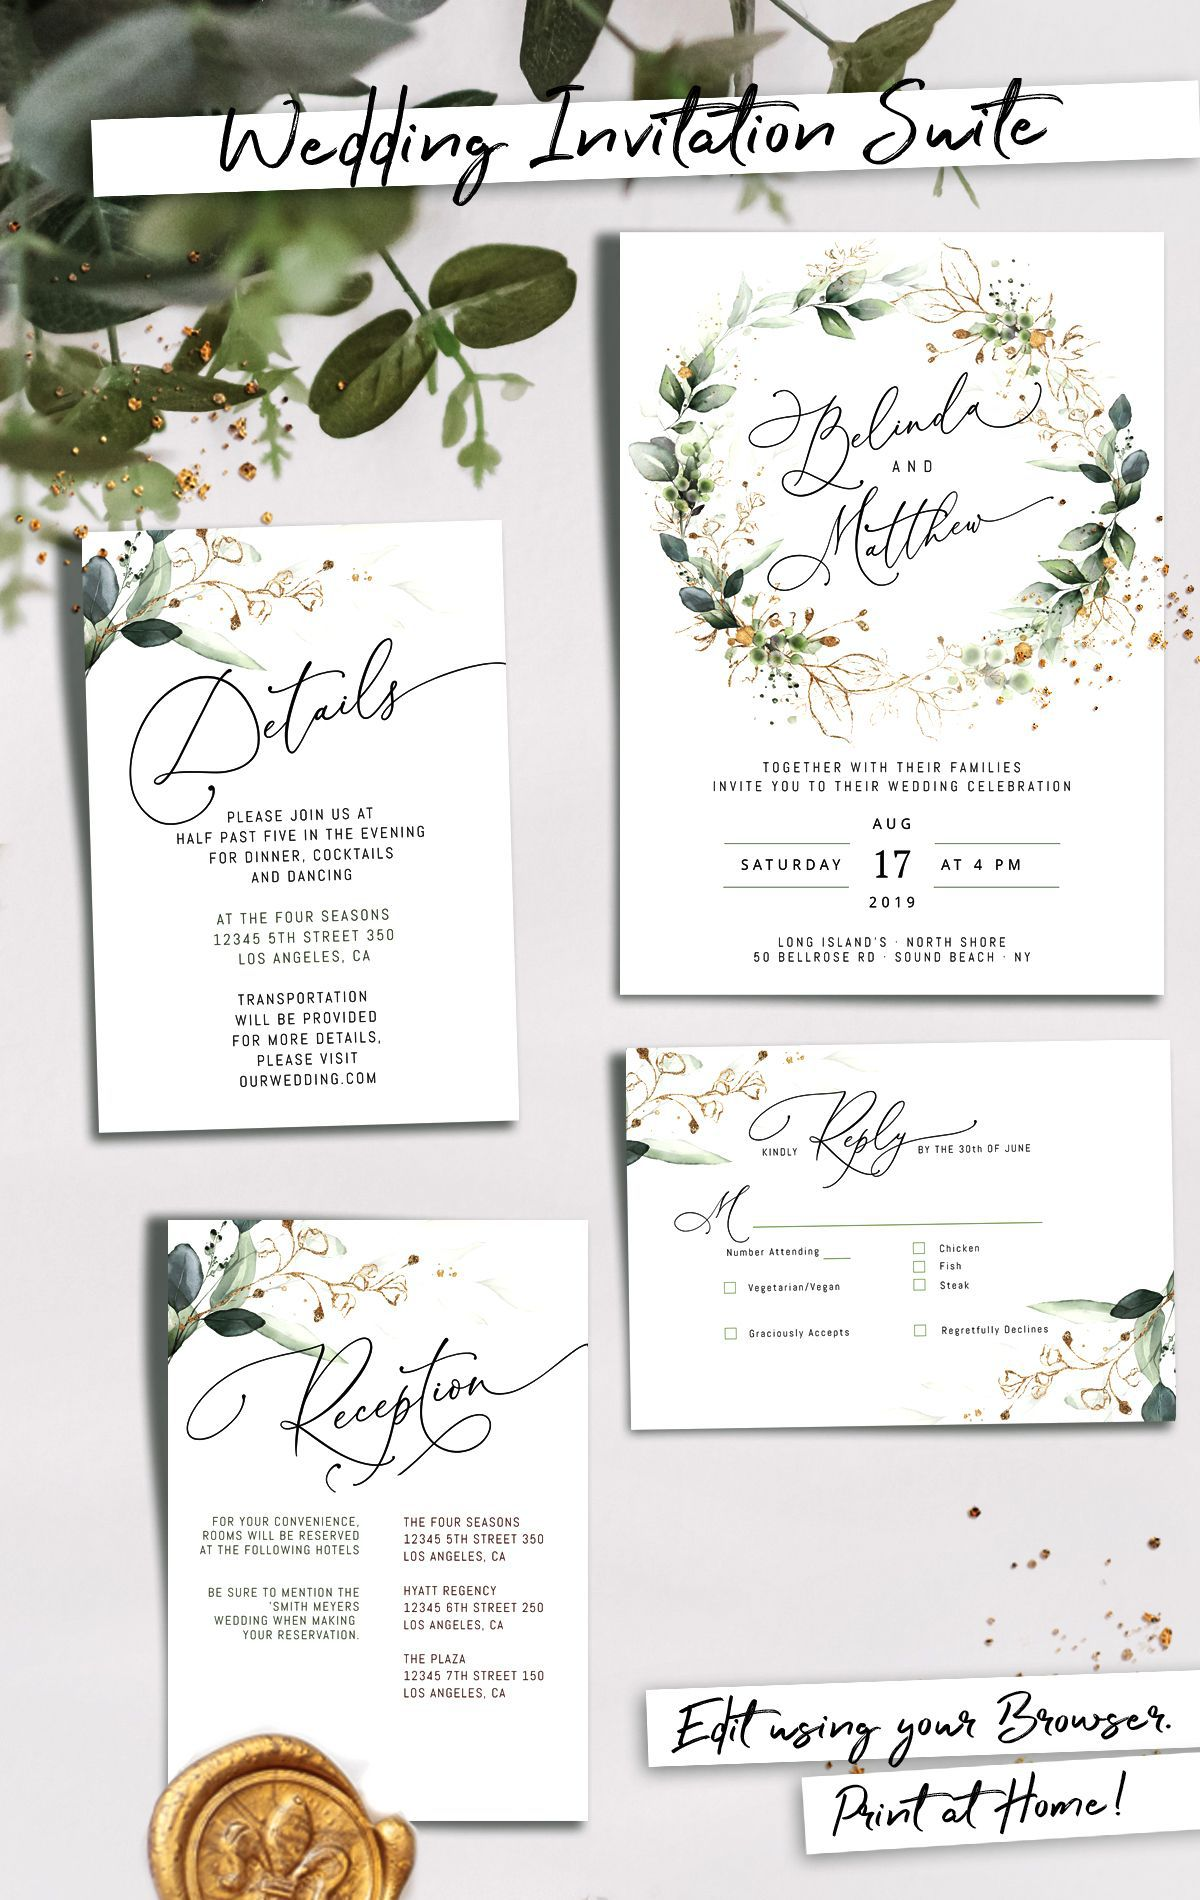 005 Amazing Editable Wedding Invitation Template High Def  Templates Tamil Card Free Download Psd OnlineFull